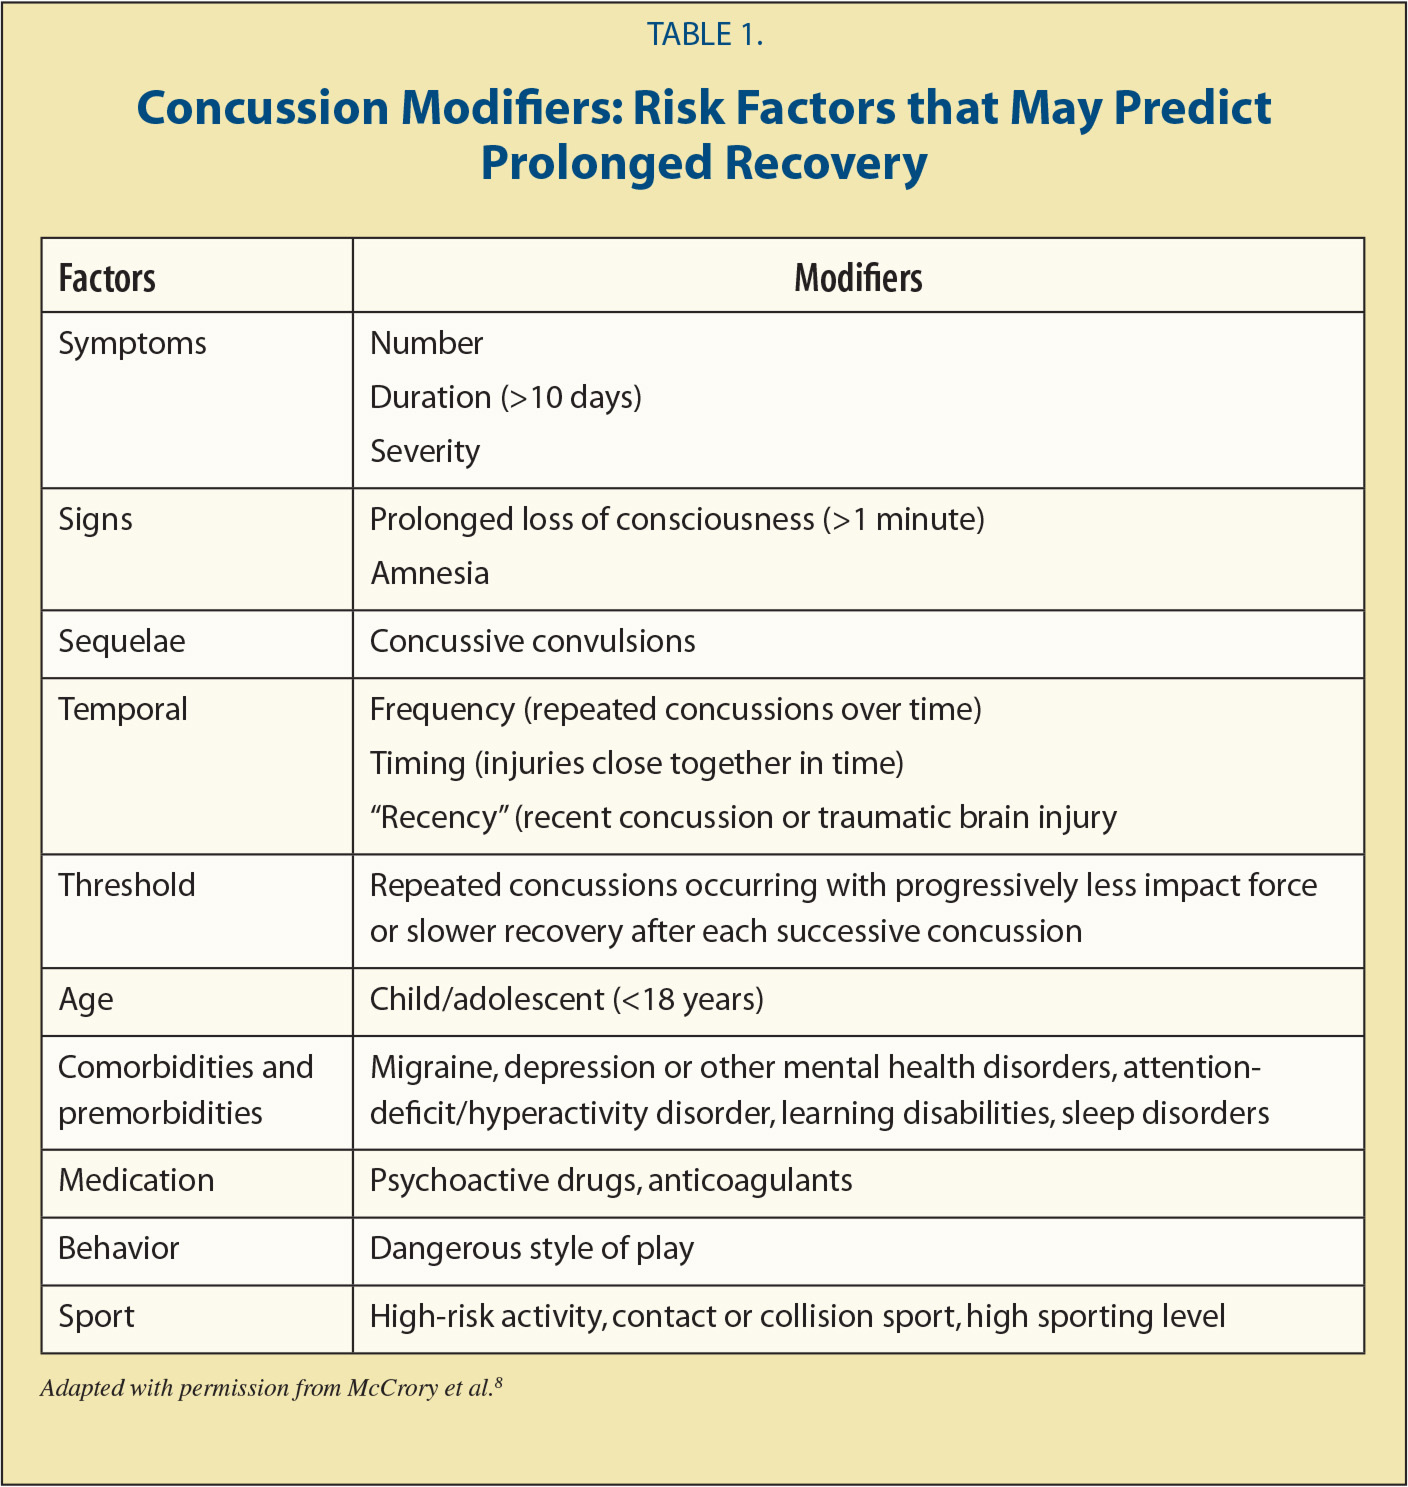 Concussion Modifiers: Risk Factors that May Predict Prolonged Recovery